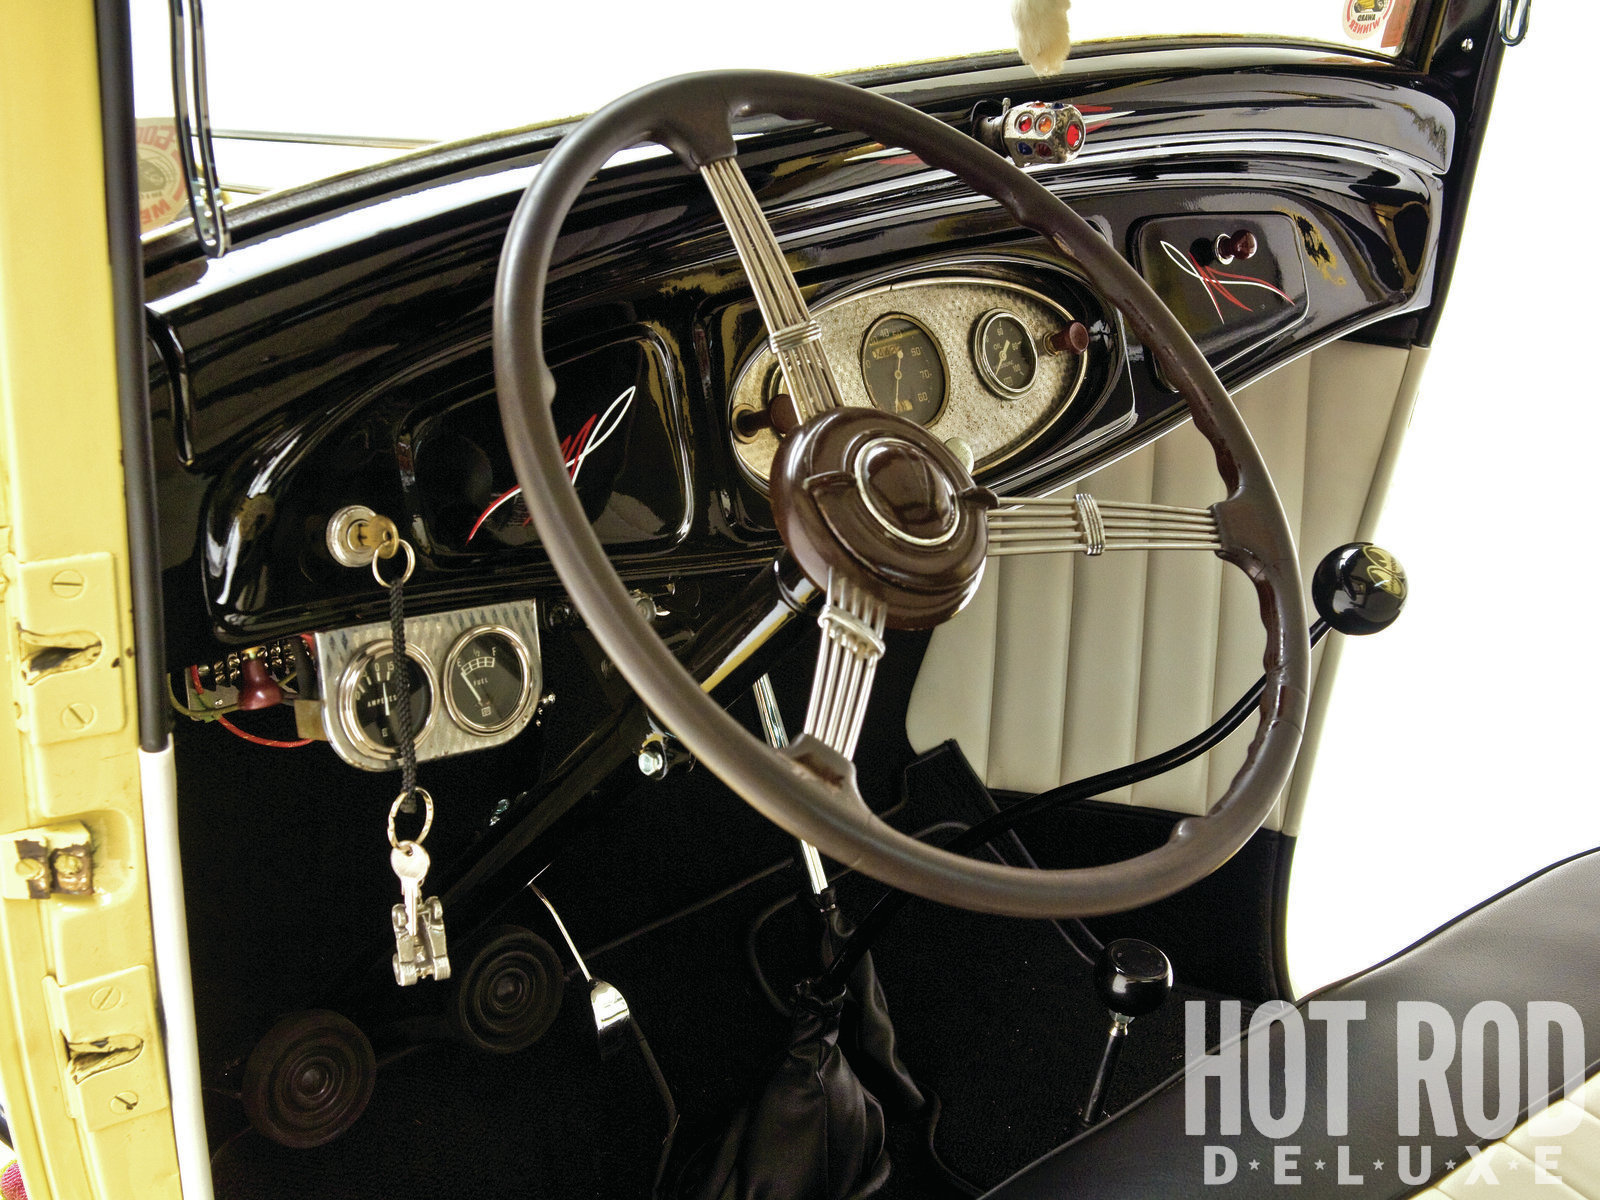 Original Stewart-Warner gauges, subtle 'striping, and a unique, jeweled light came together in a sexy dashboard.